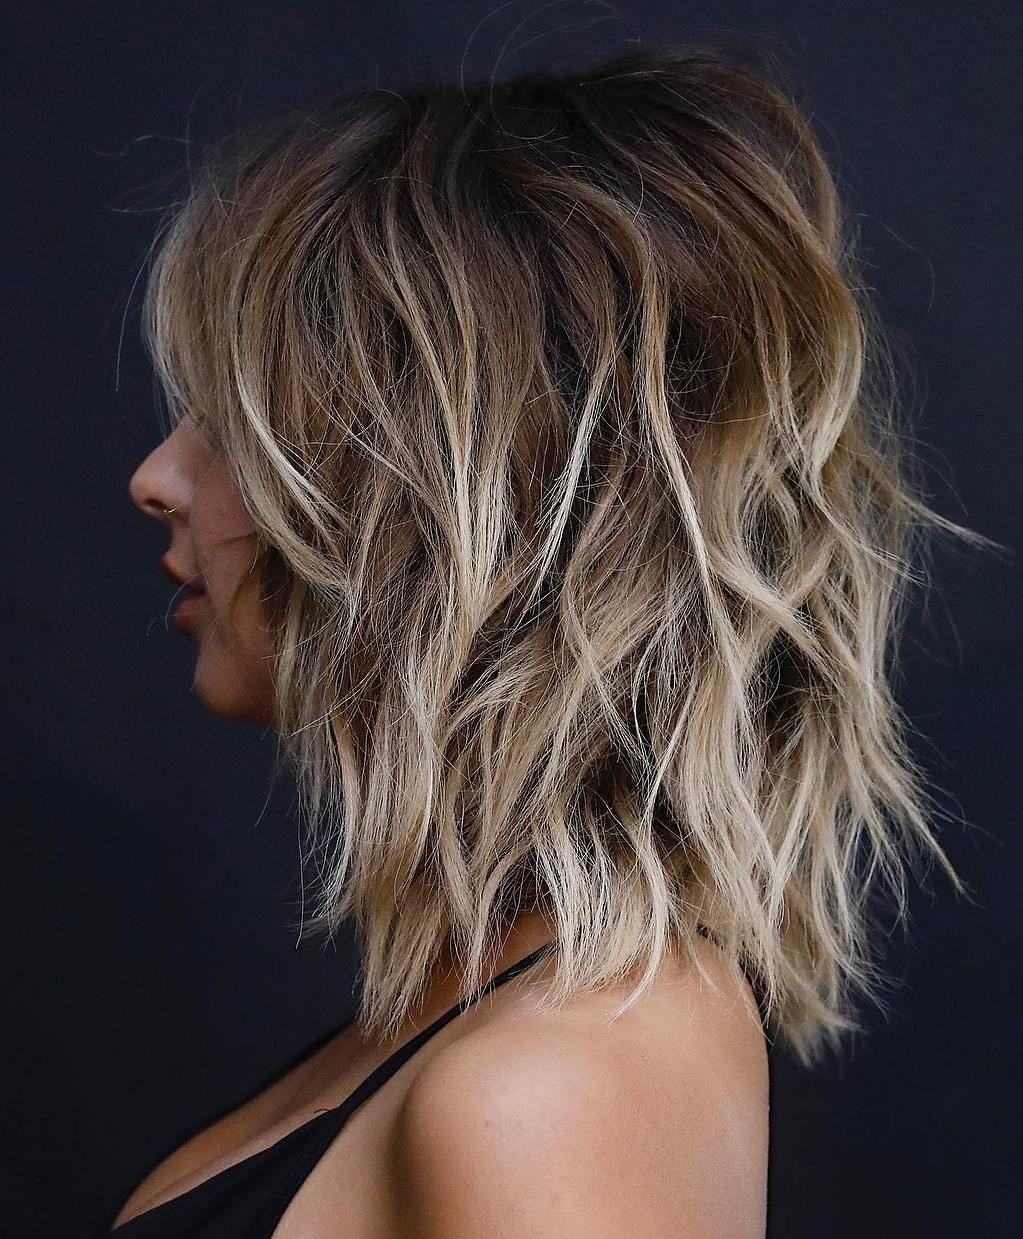 Medium Shag with Cool Blonde Highlights